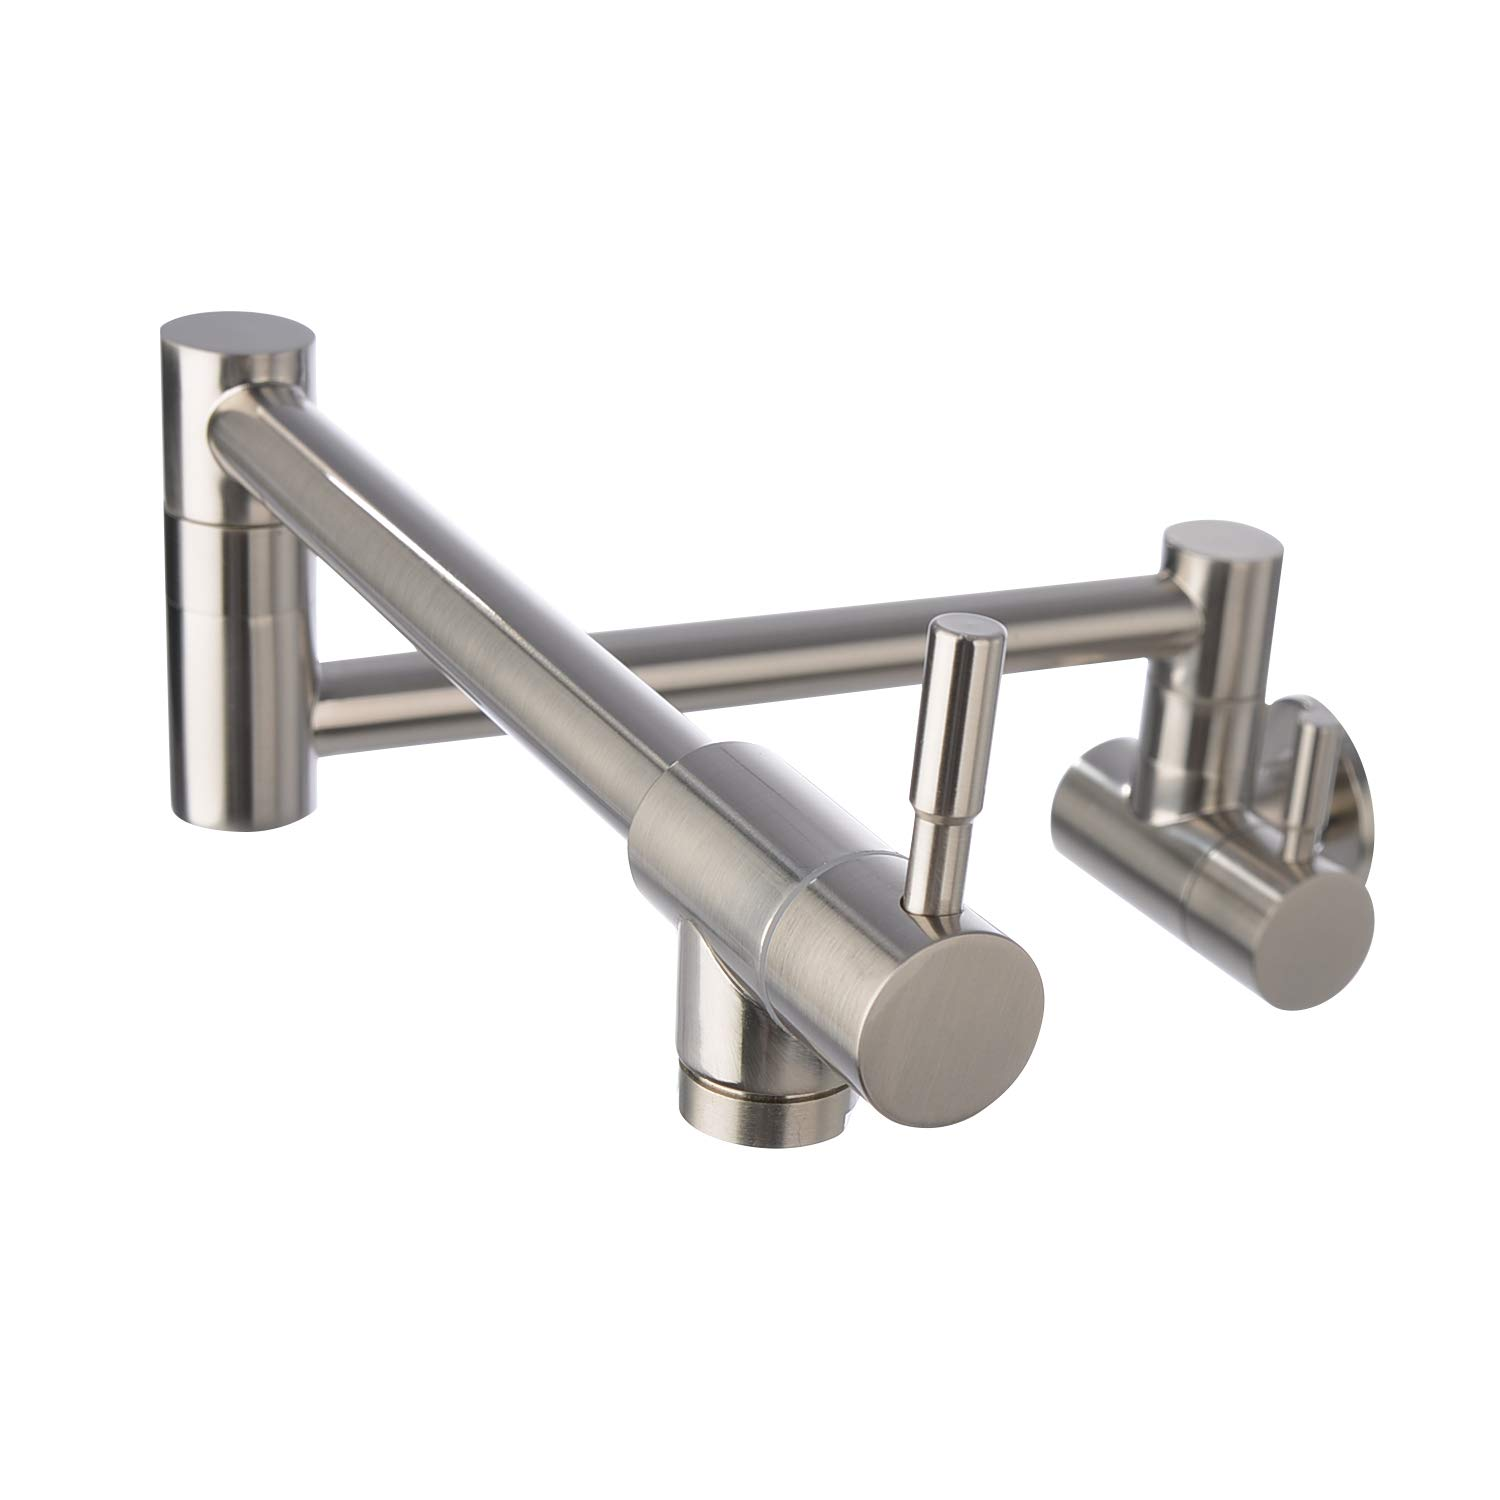 Neady Pot Filler Faucet Wall Mount Folding Stretchable Double Joint Swing Arm Kitchen Sink Faucet Stainless Steel Two Handle Wall Mount Faucet, Brushed Nickel by Neady